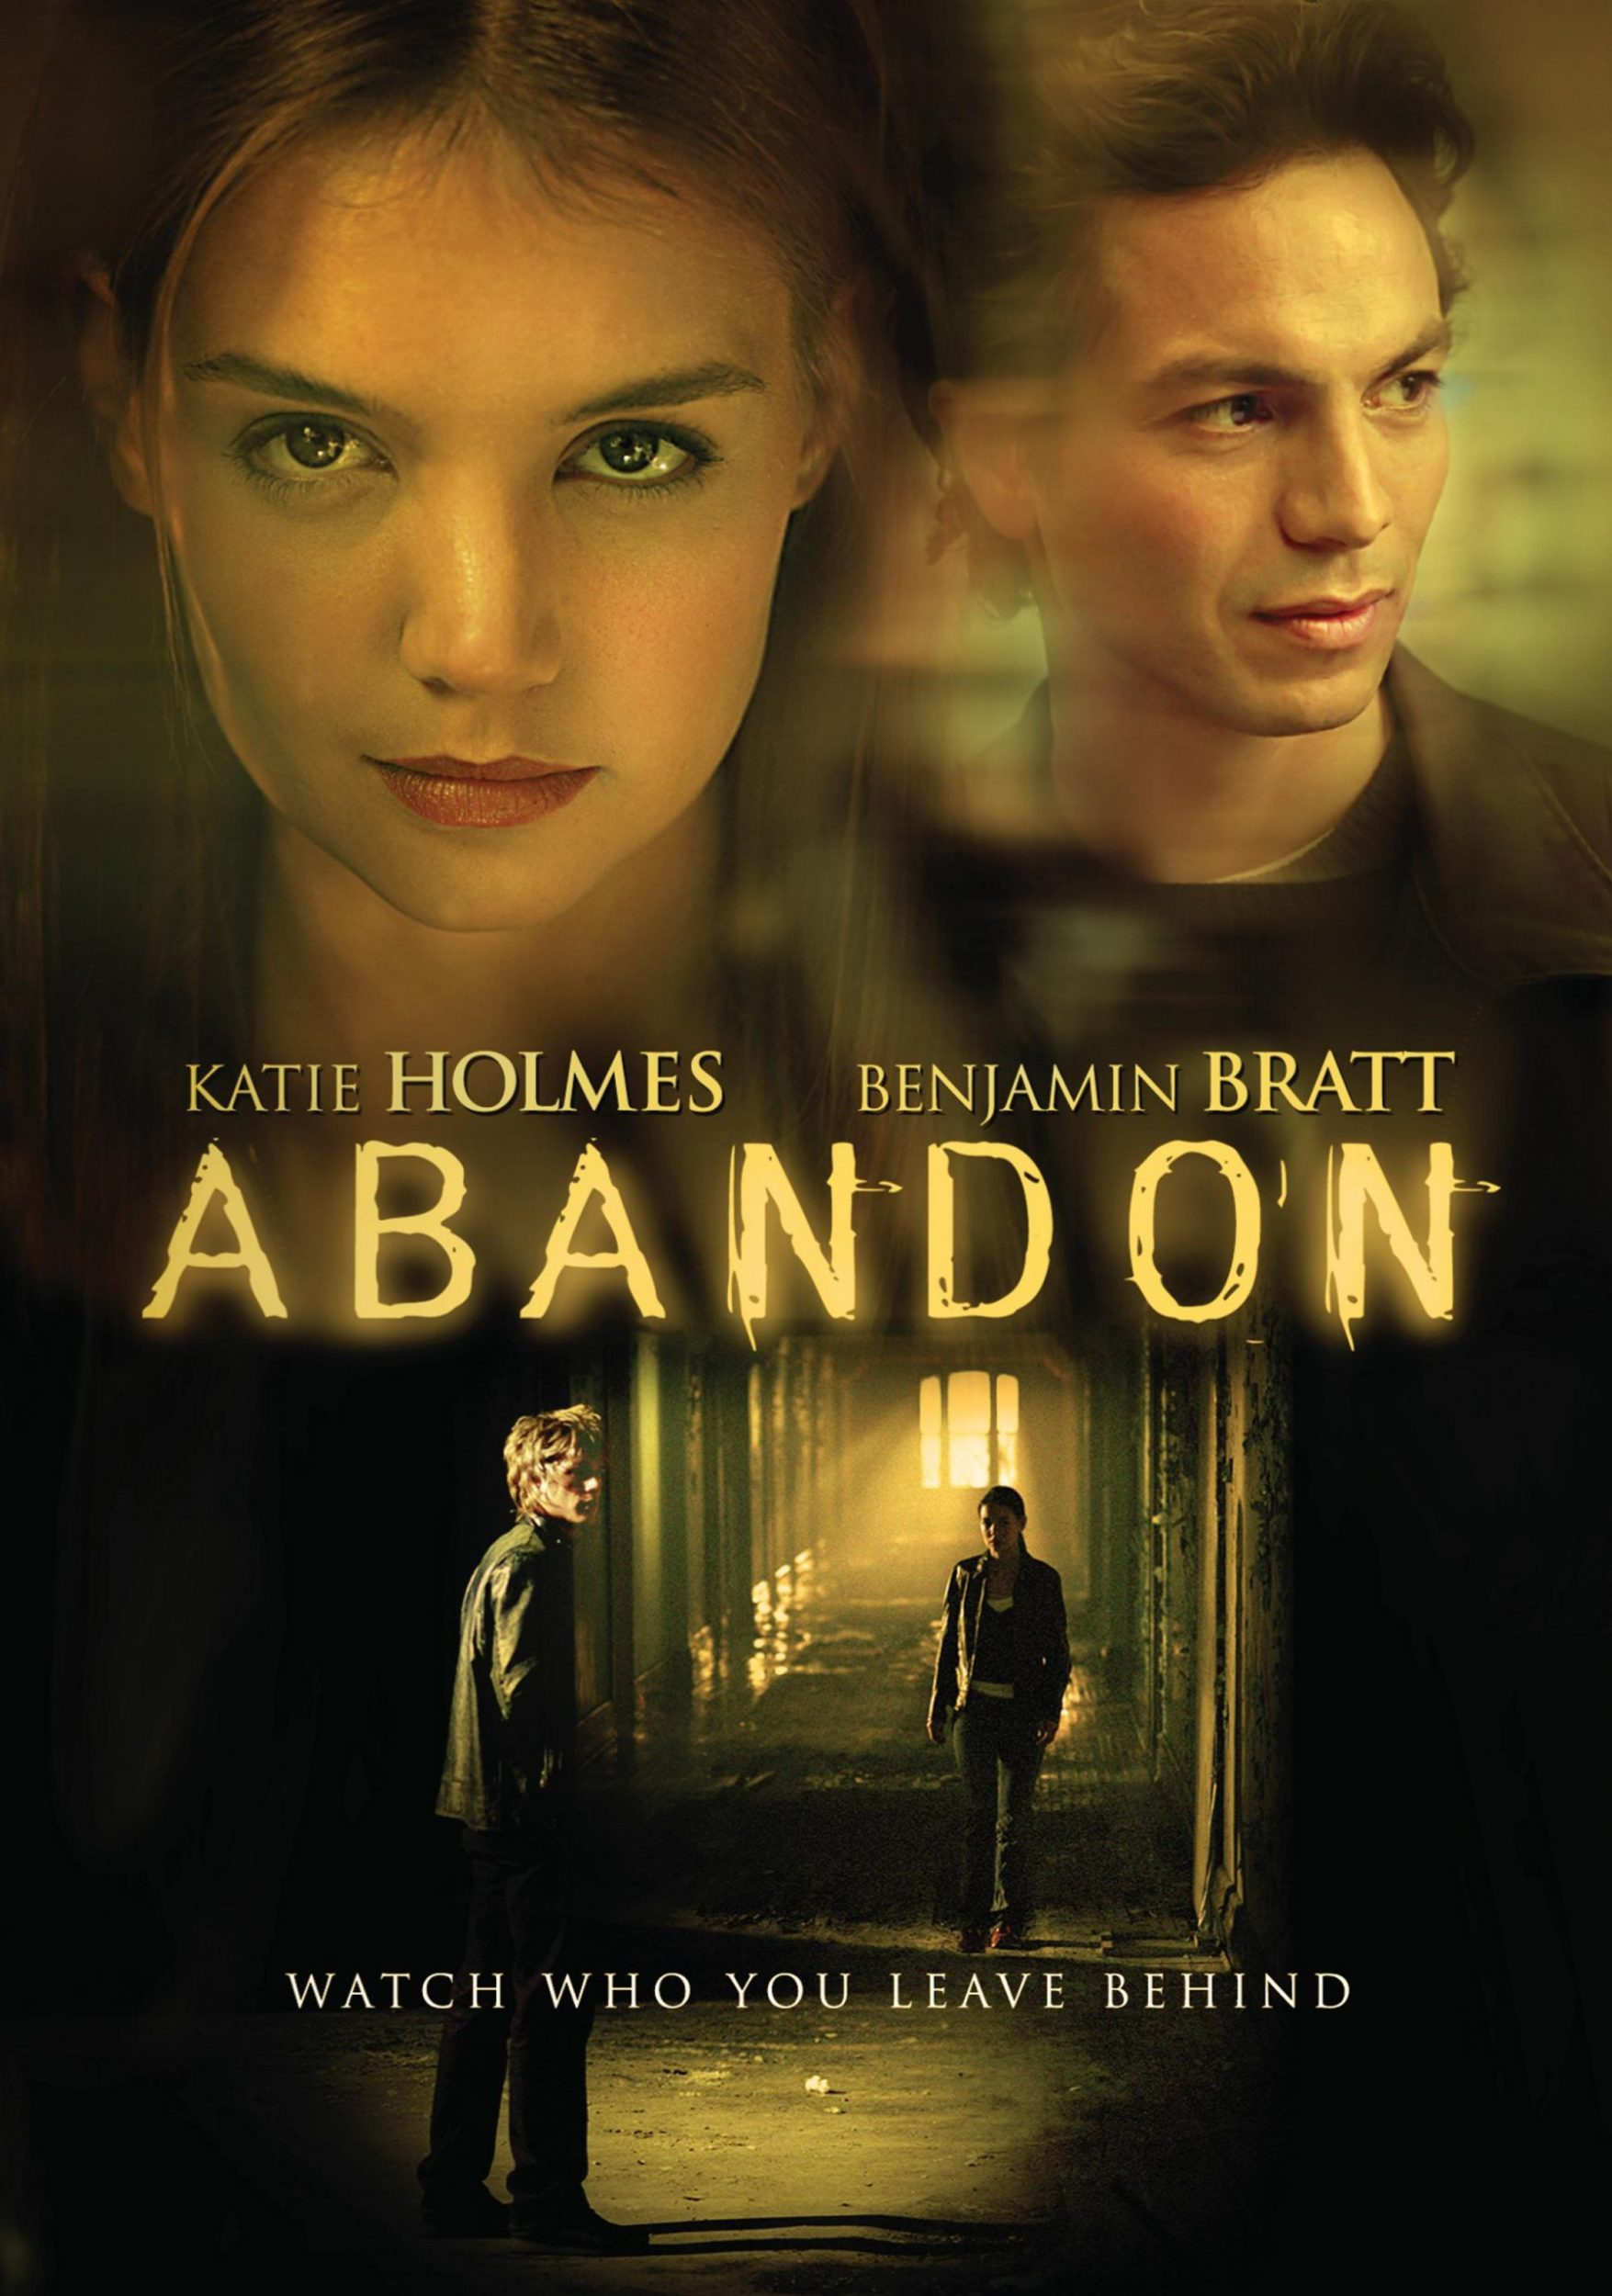 Affiche Poster abandon disney touchstone